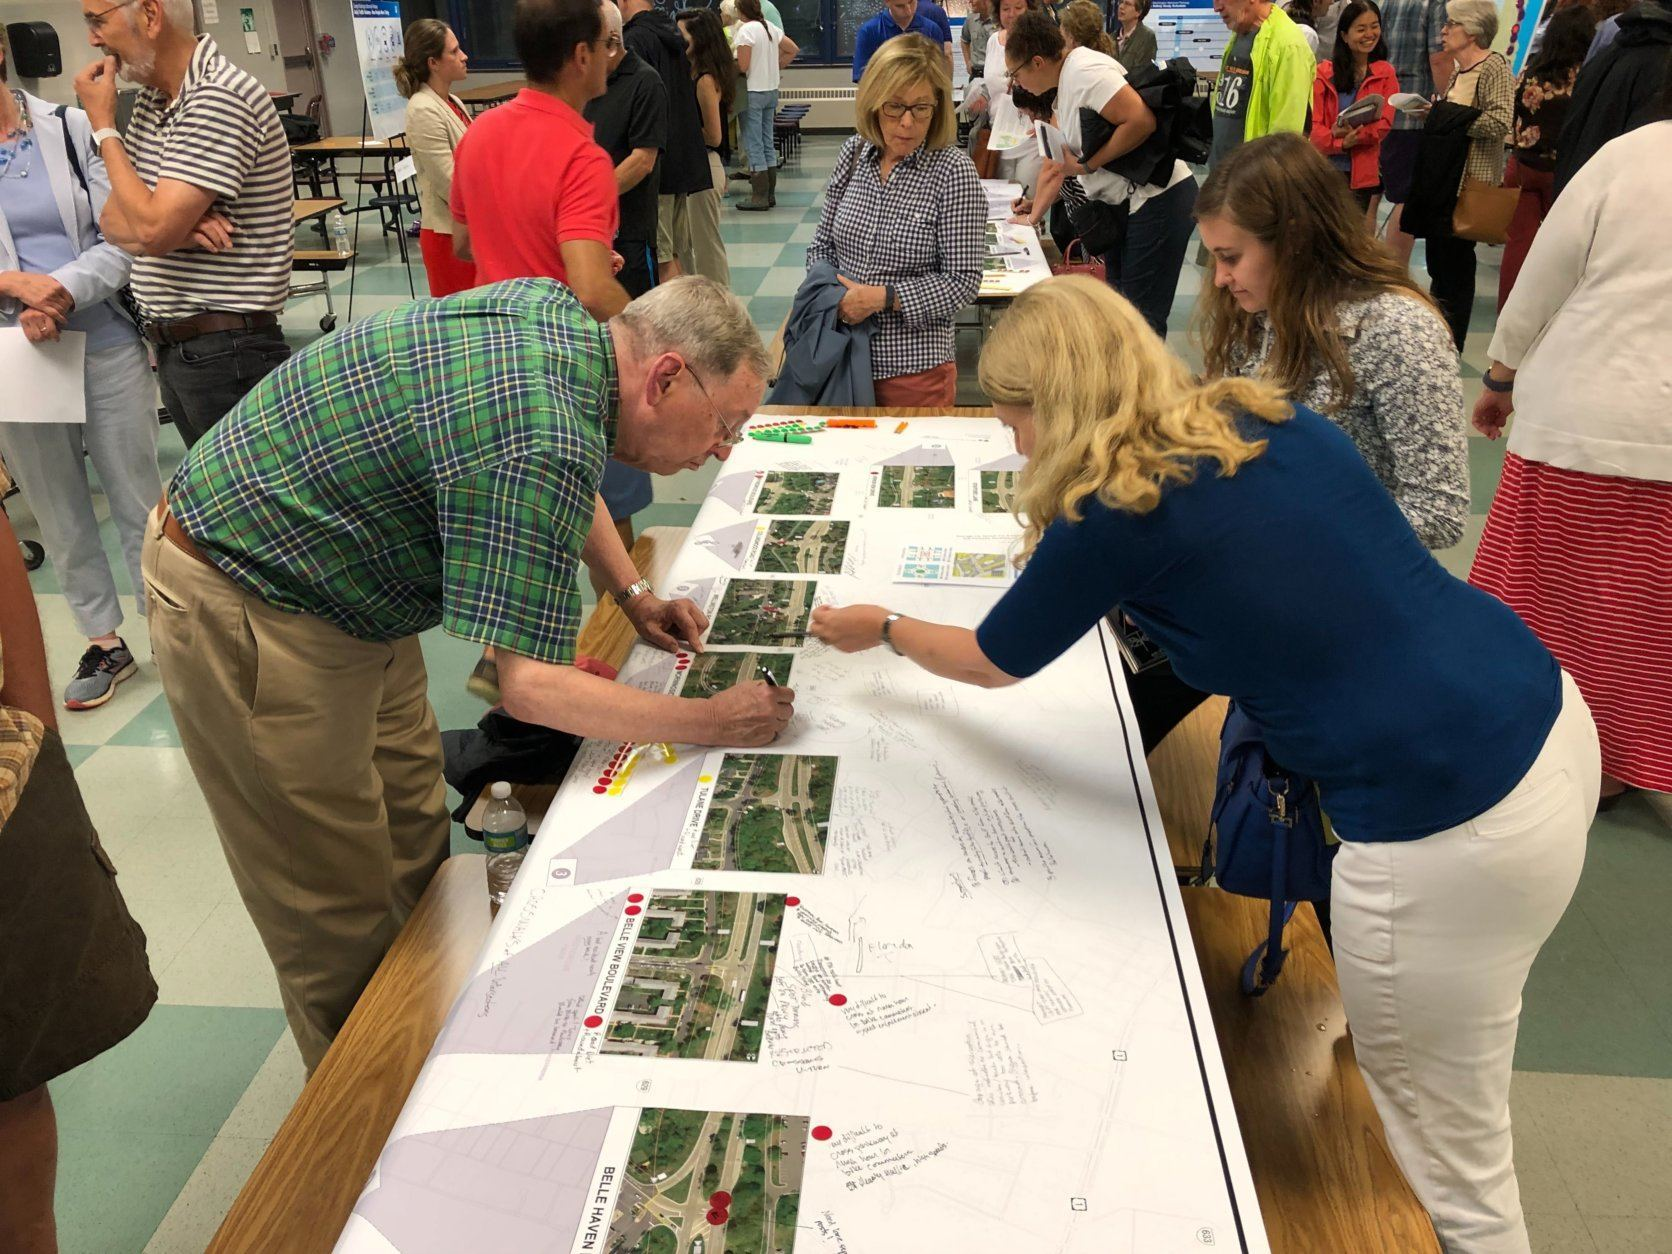 People look at information at GW Parkway meeting